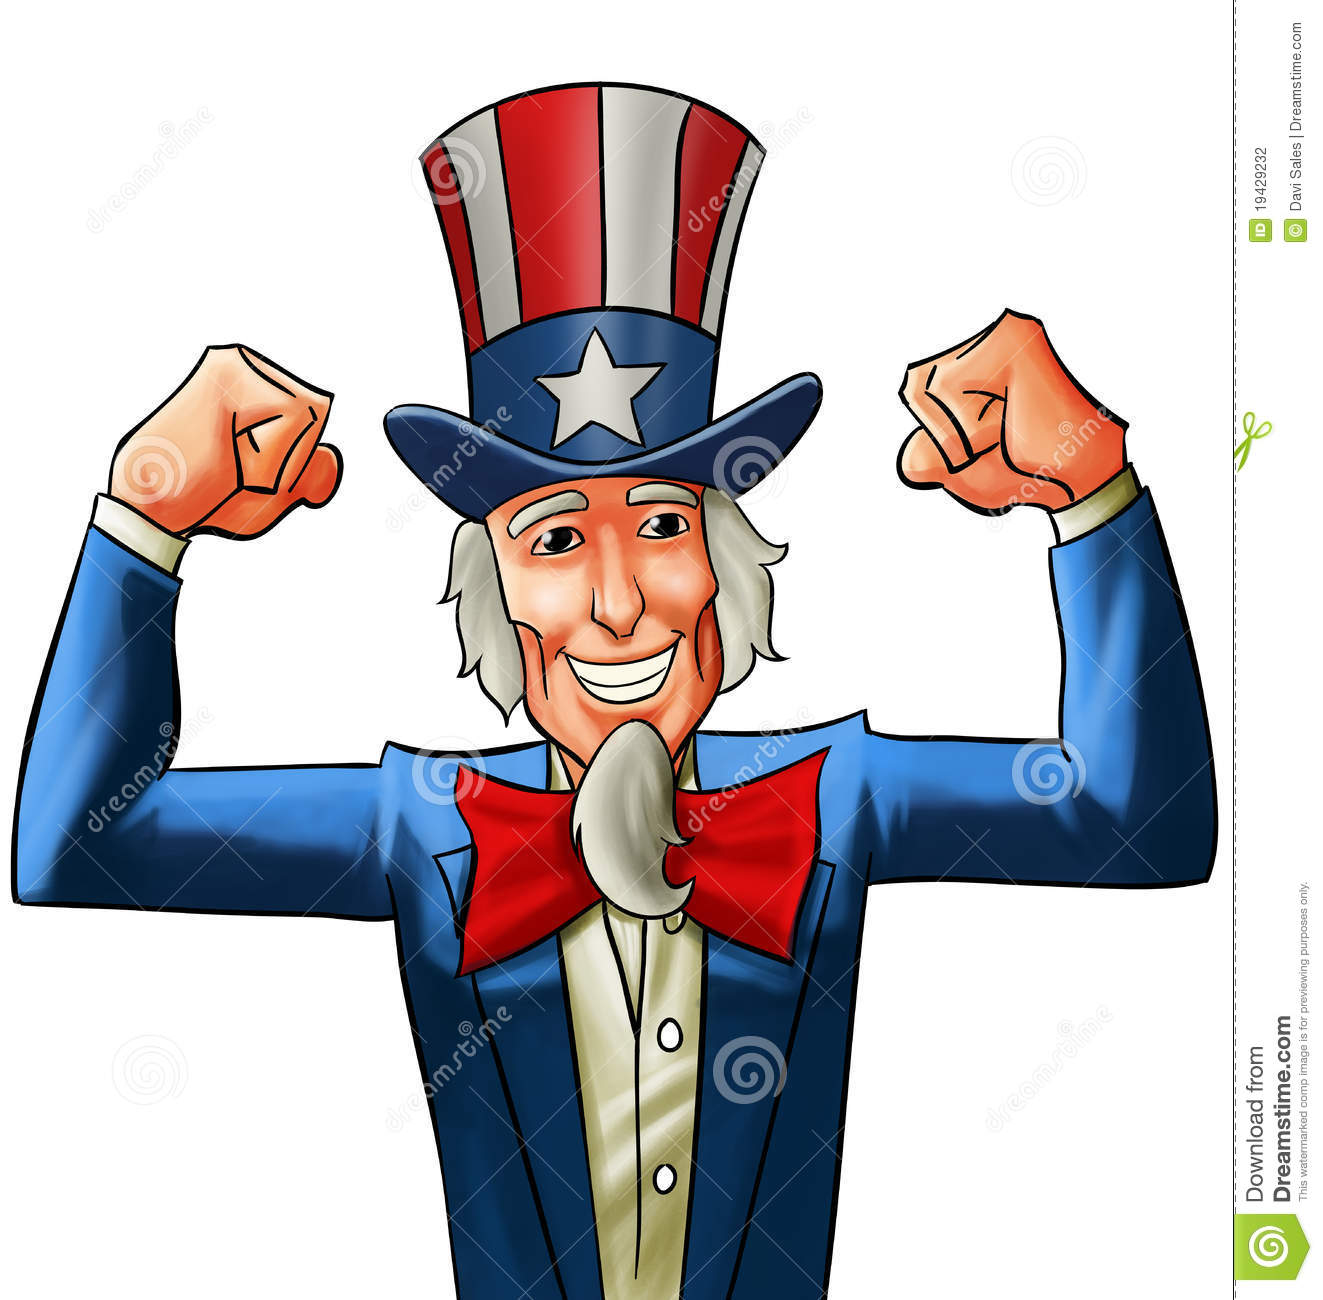 Uncle sam very happy, he got his fists up.